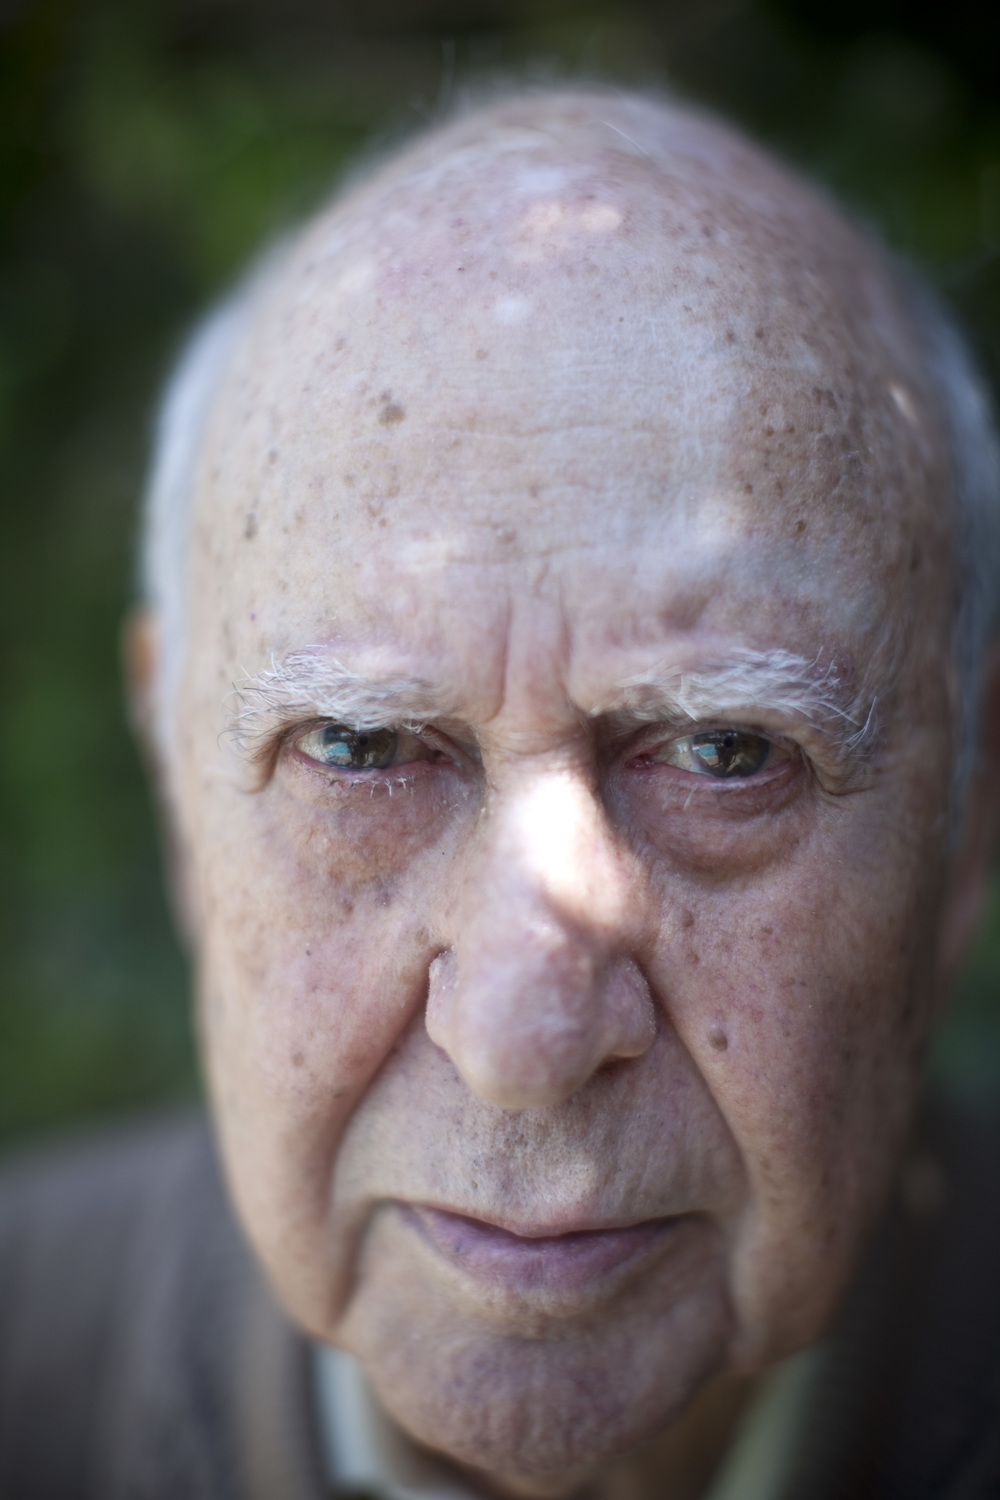 Carl Reiner - Actor, director, producer, writer, singer, dancer, voice artist, comedian